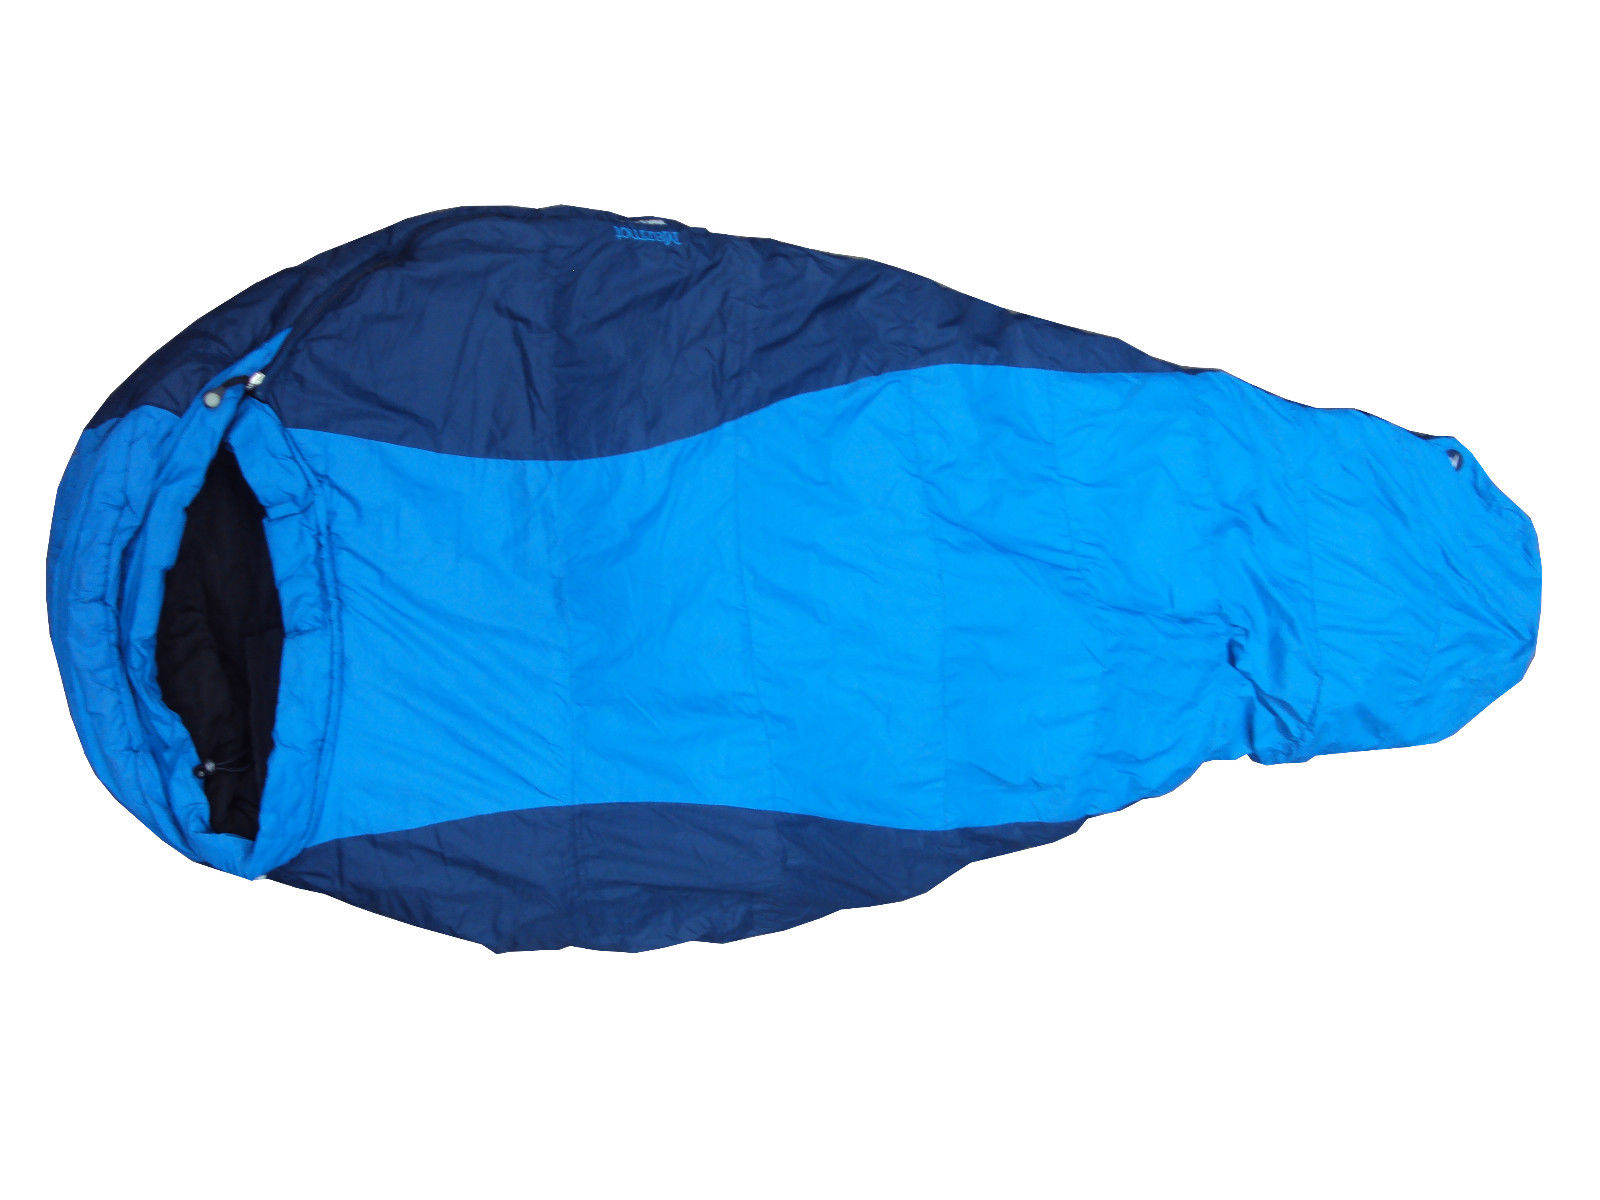 Lot 45 - 10 x Blue Army Sleeping Bag - Used - Grade 1 Condition